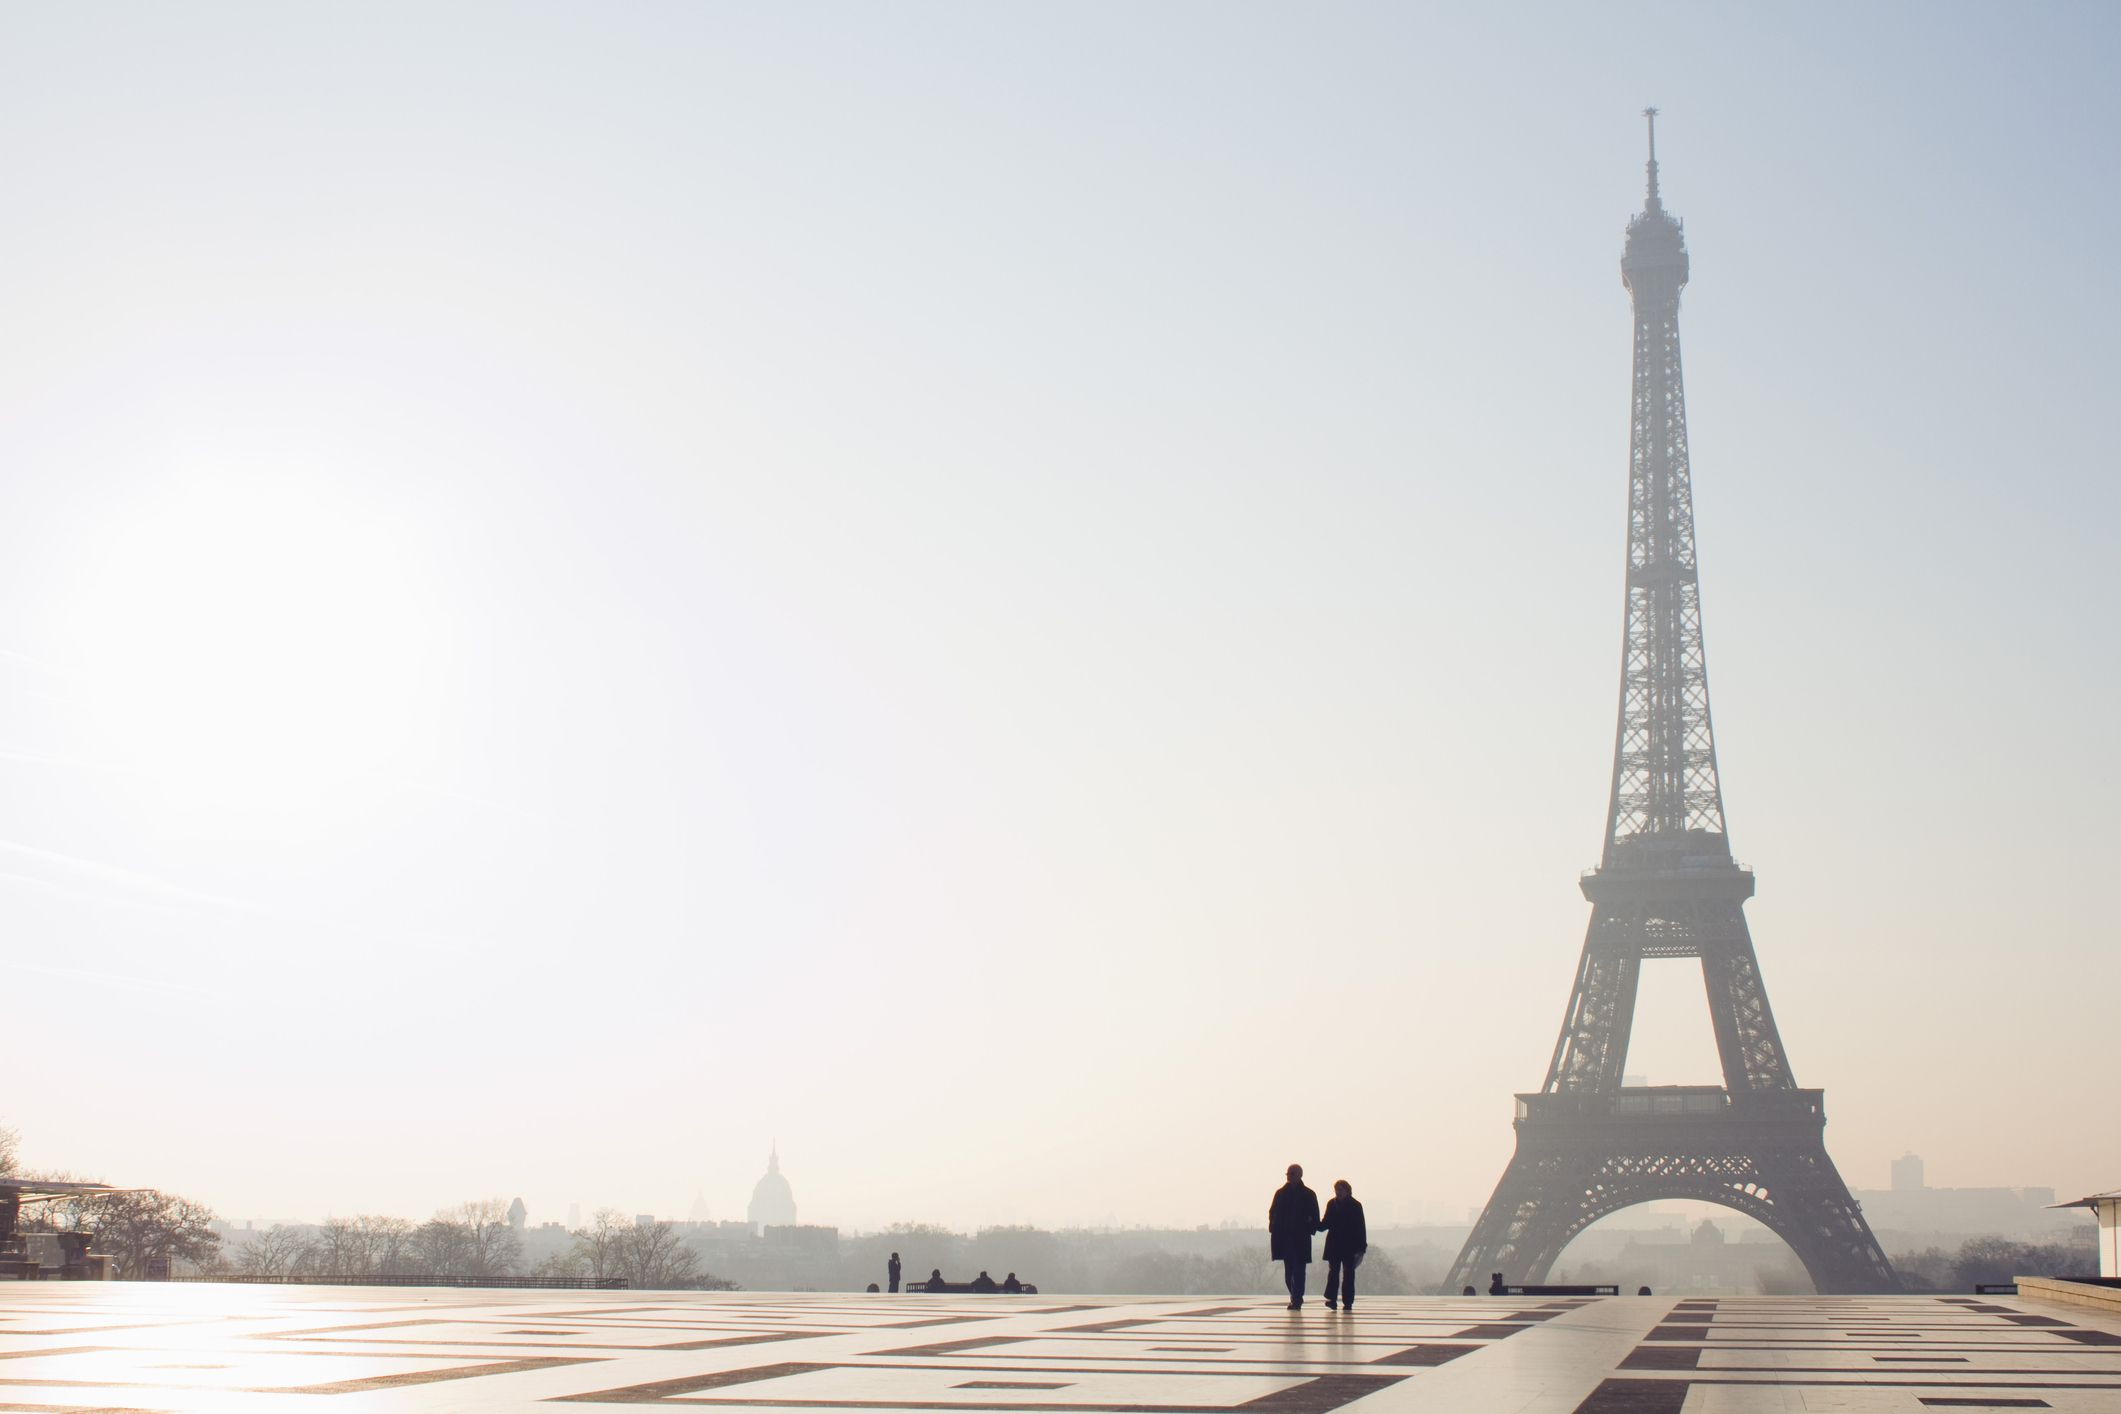 The Top 7 Things to Do Around the Eiffel Tower